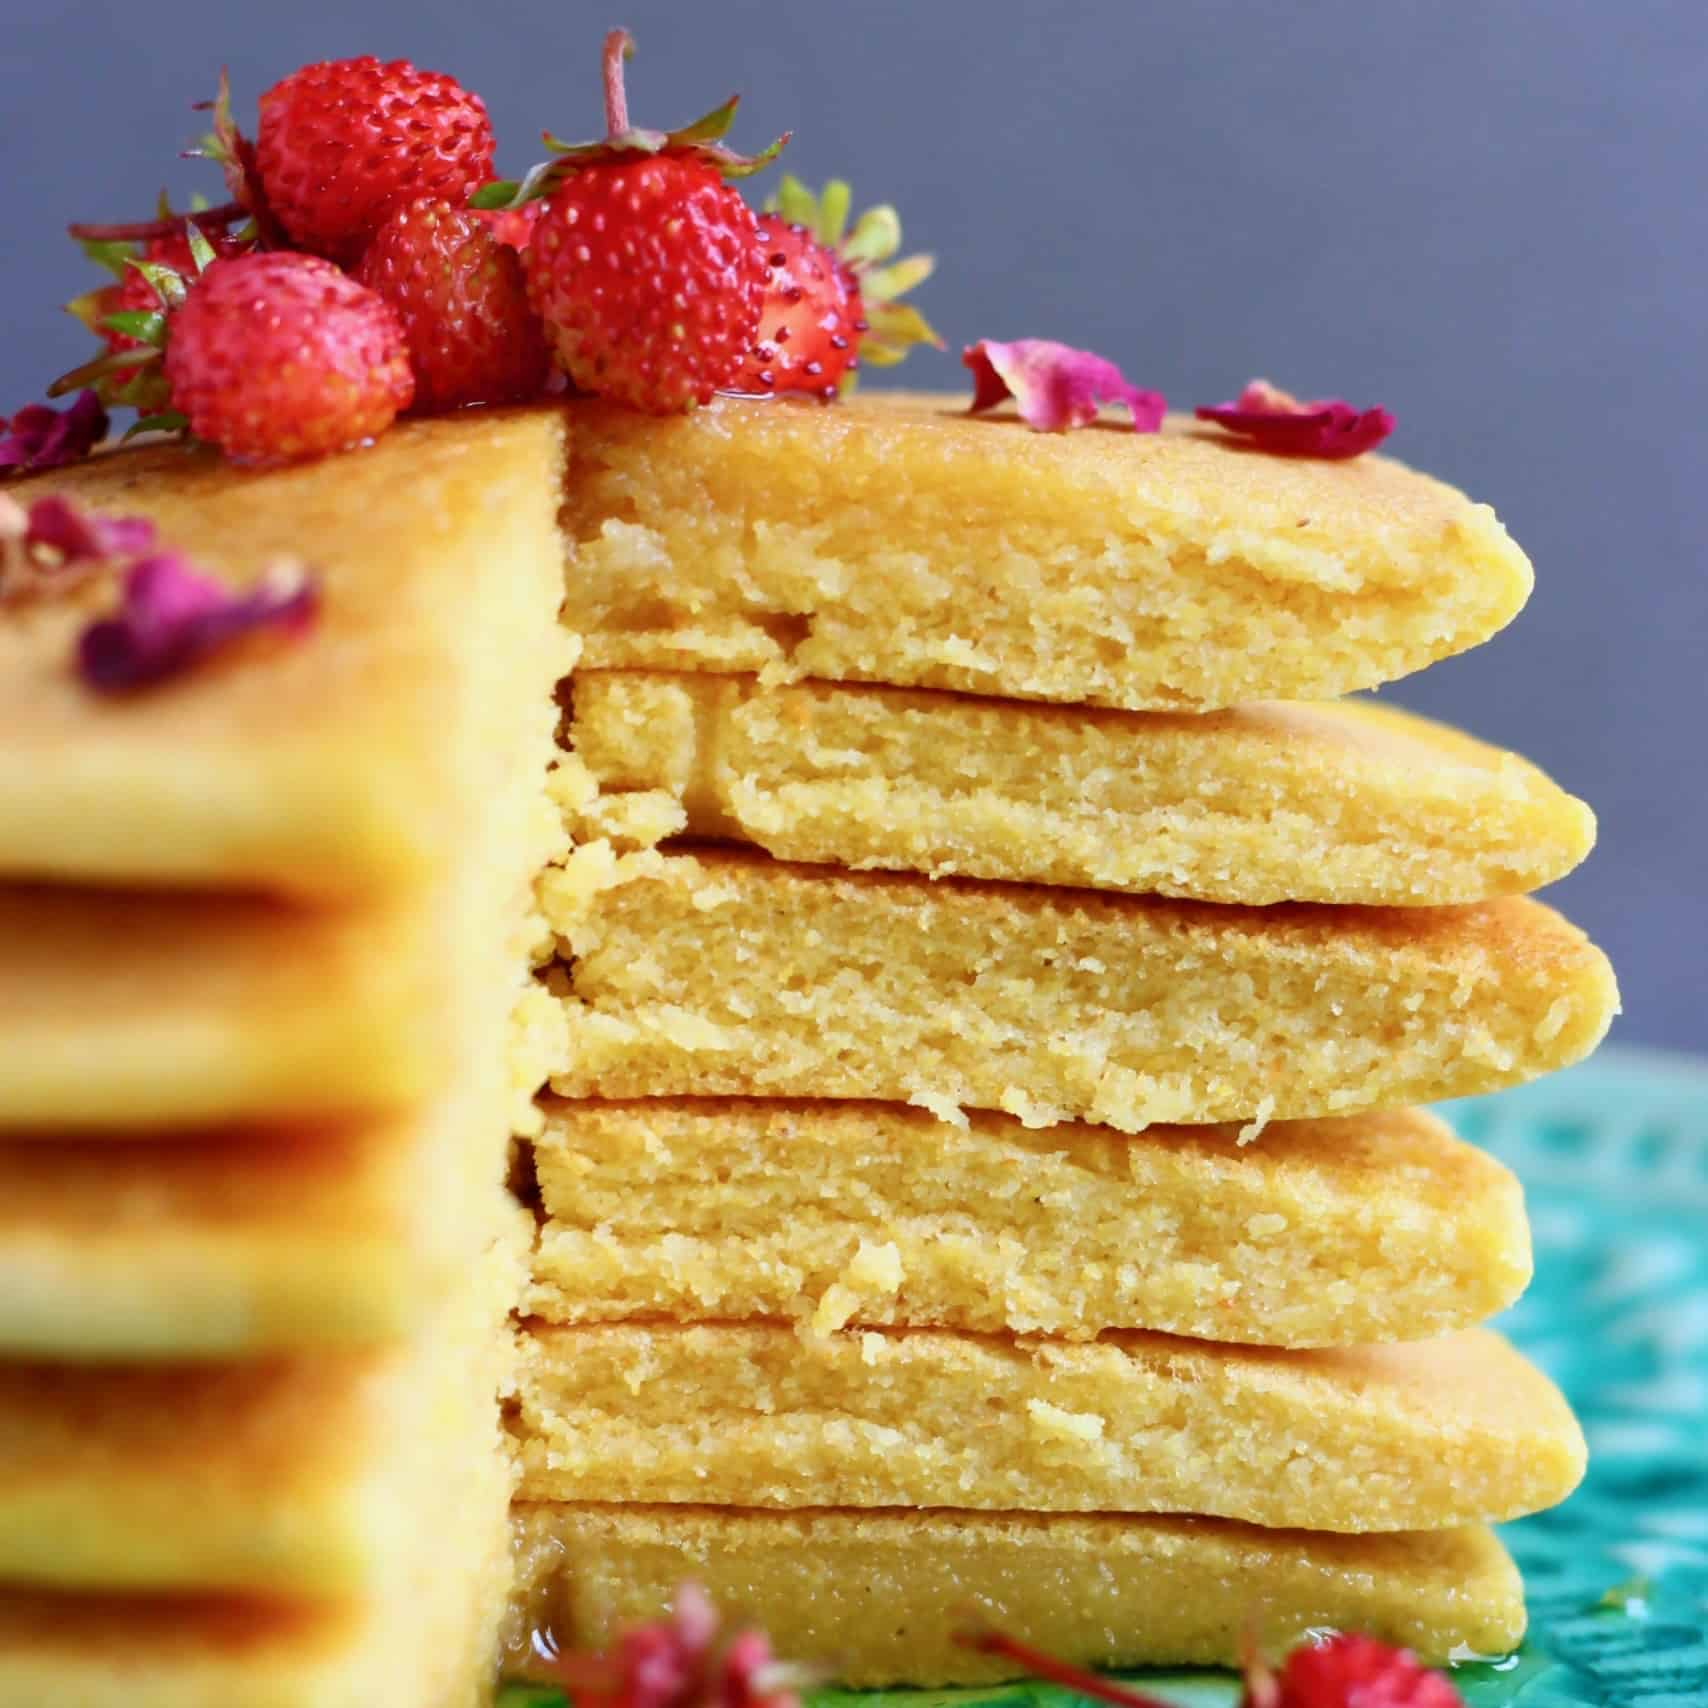 A stack of cornmeal pancakes with a slice cut out of them topped with rose petals and small strawberries on a green plate against a grey background